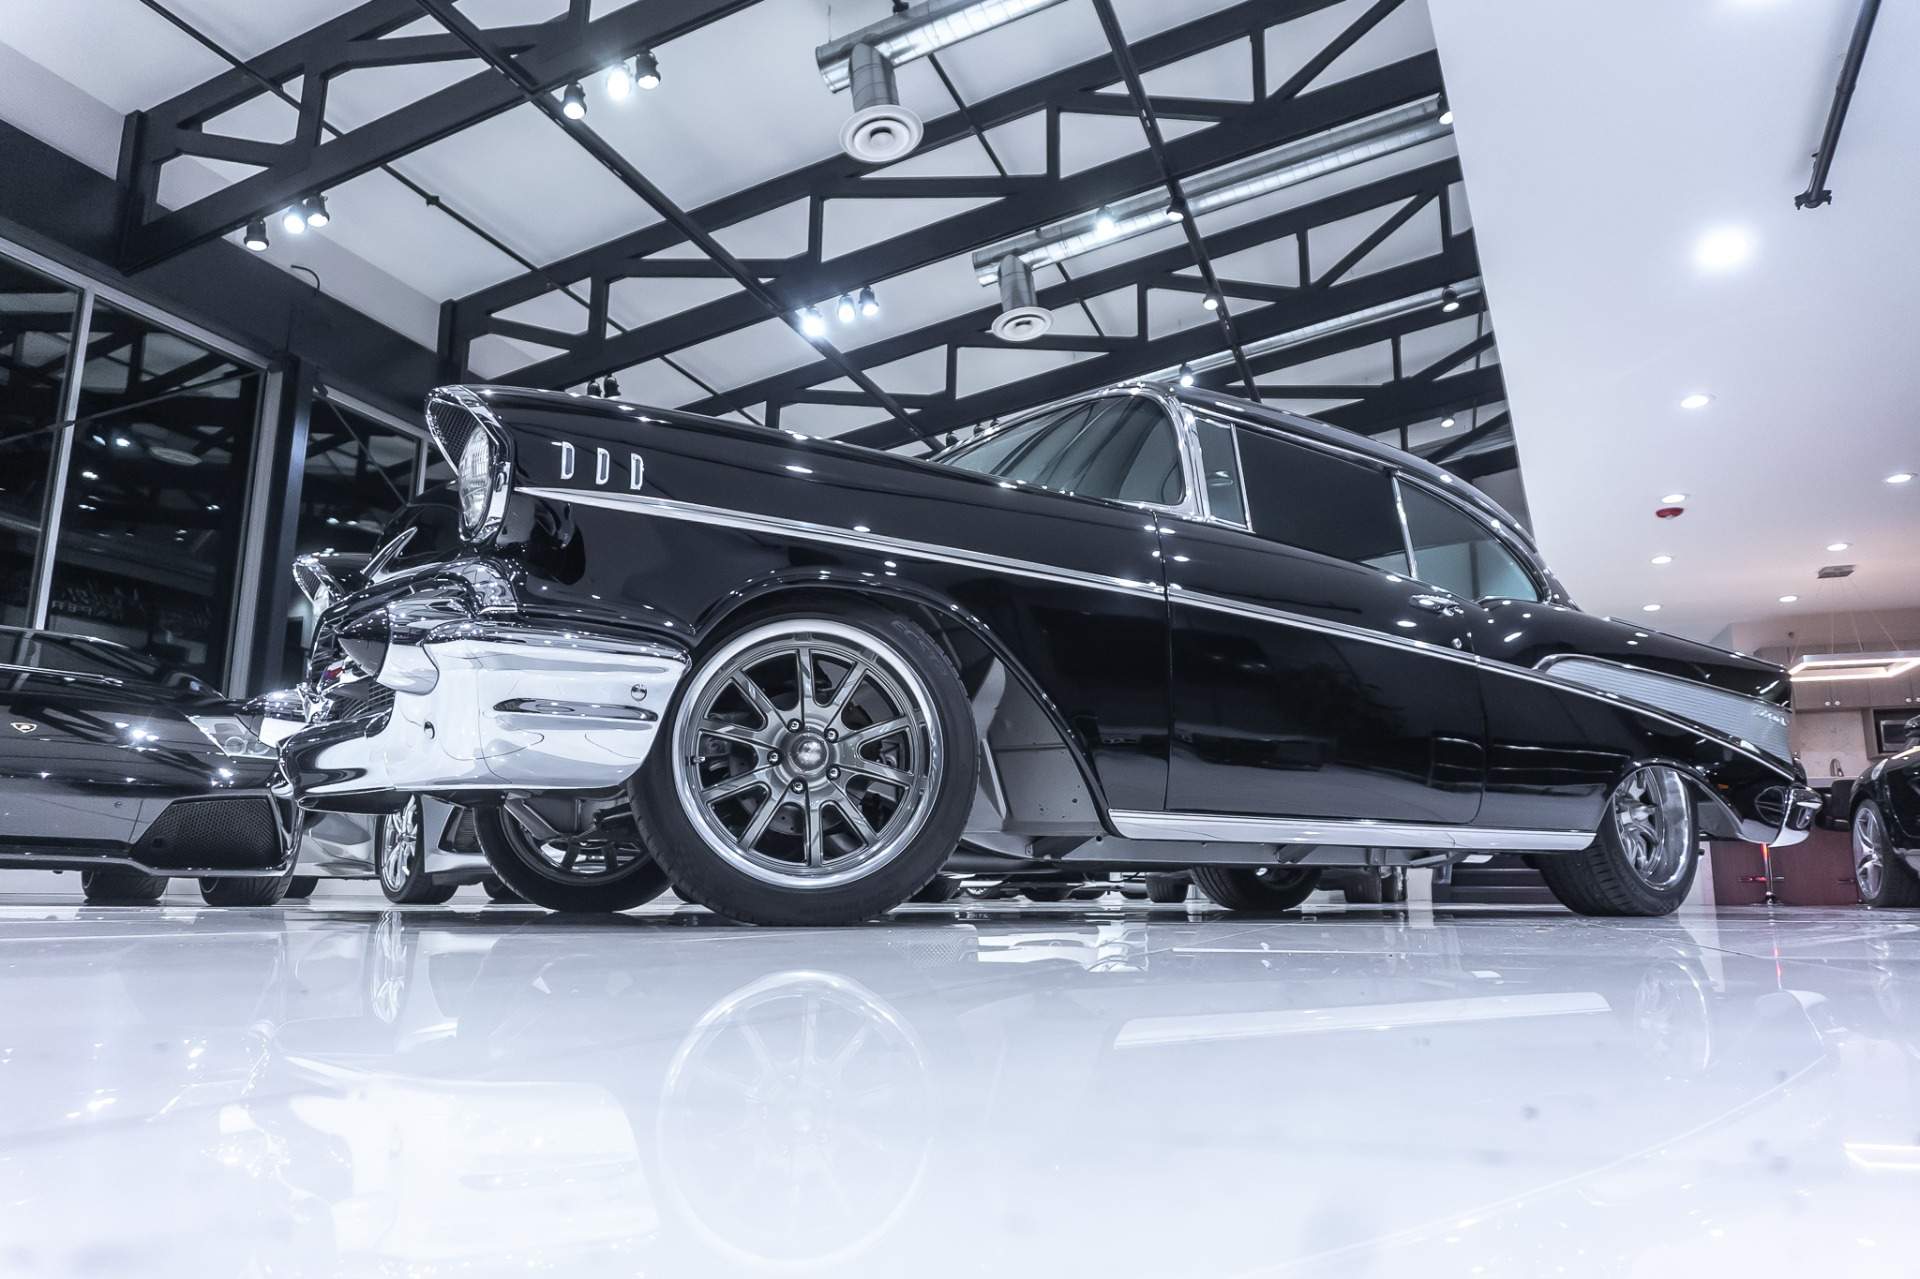 Used-1957-Chevrolet-BELAIR-2-DOOR-Coupe-Restomod-L98-350ci-Only-400-MILES-SINCE-FRAME-OFF-RESTO